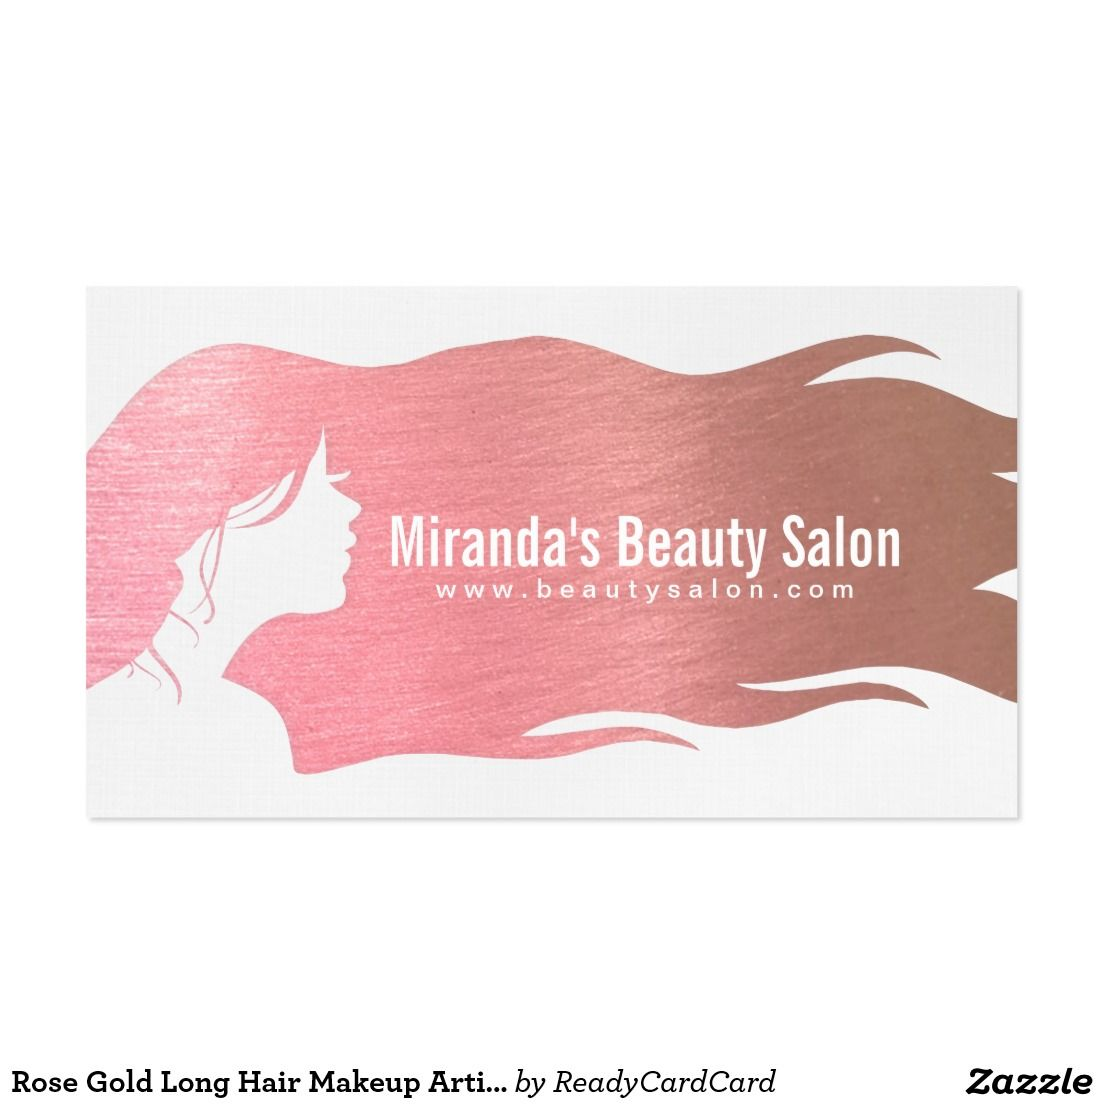 Rose gold long hair makeup artist hair stylist business card rose gold long hair makeup artist hair stylist business card magicingreecefo Image collections